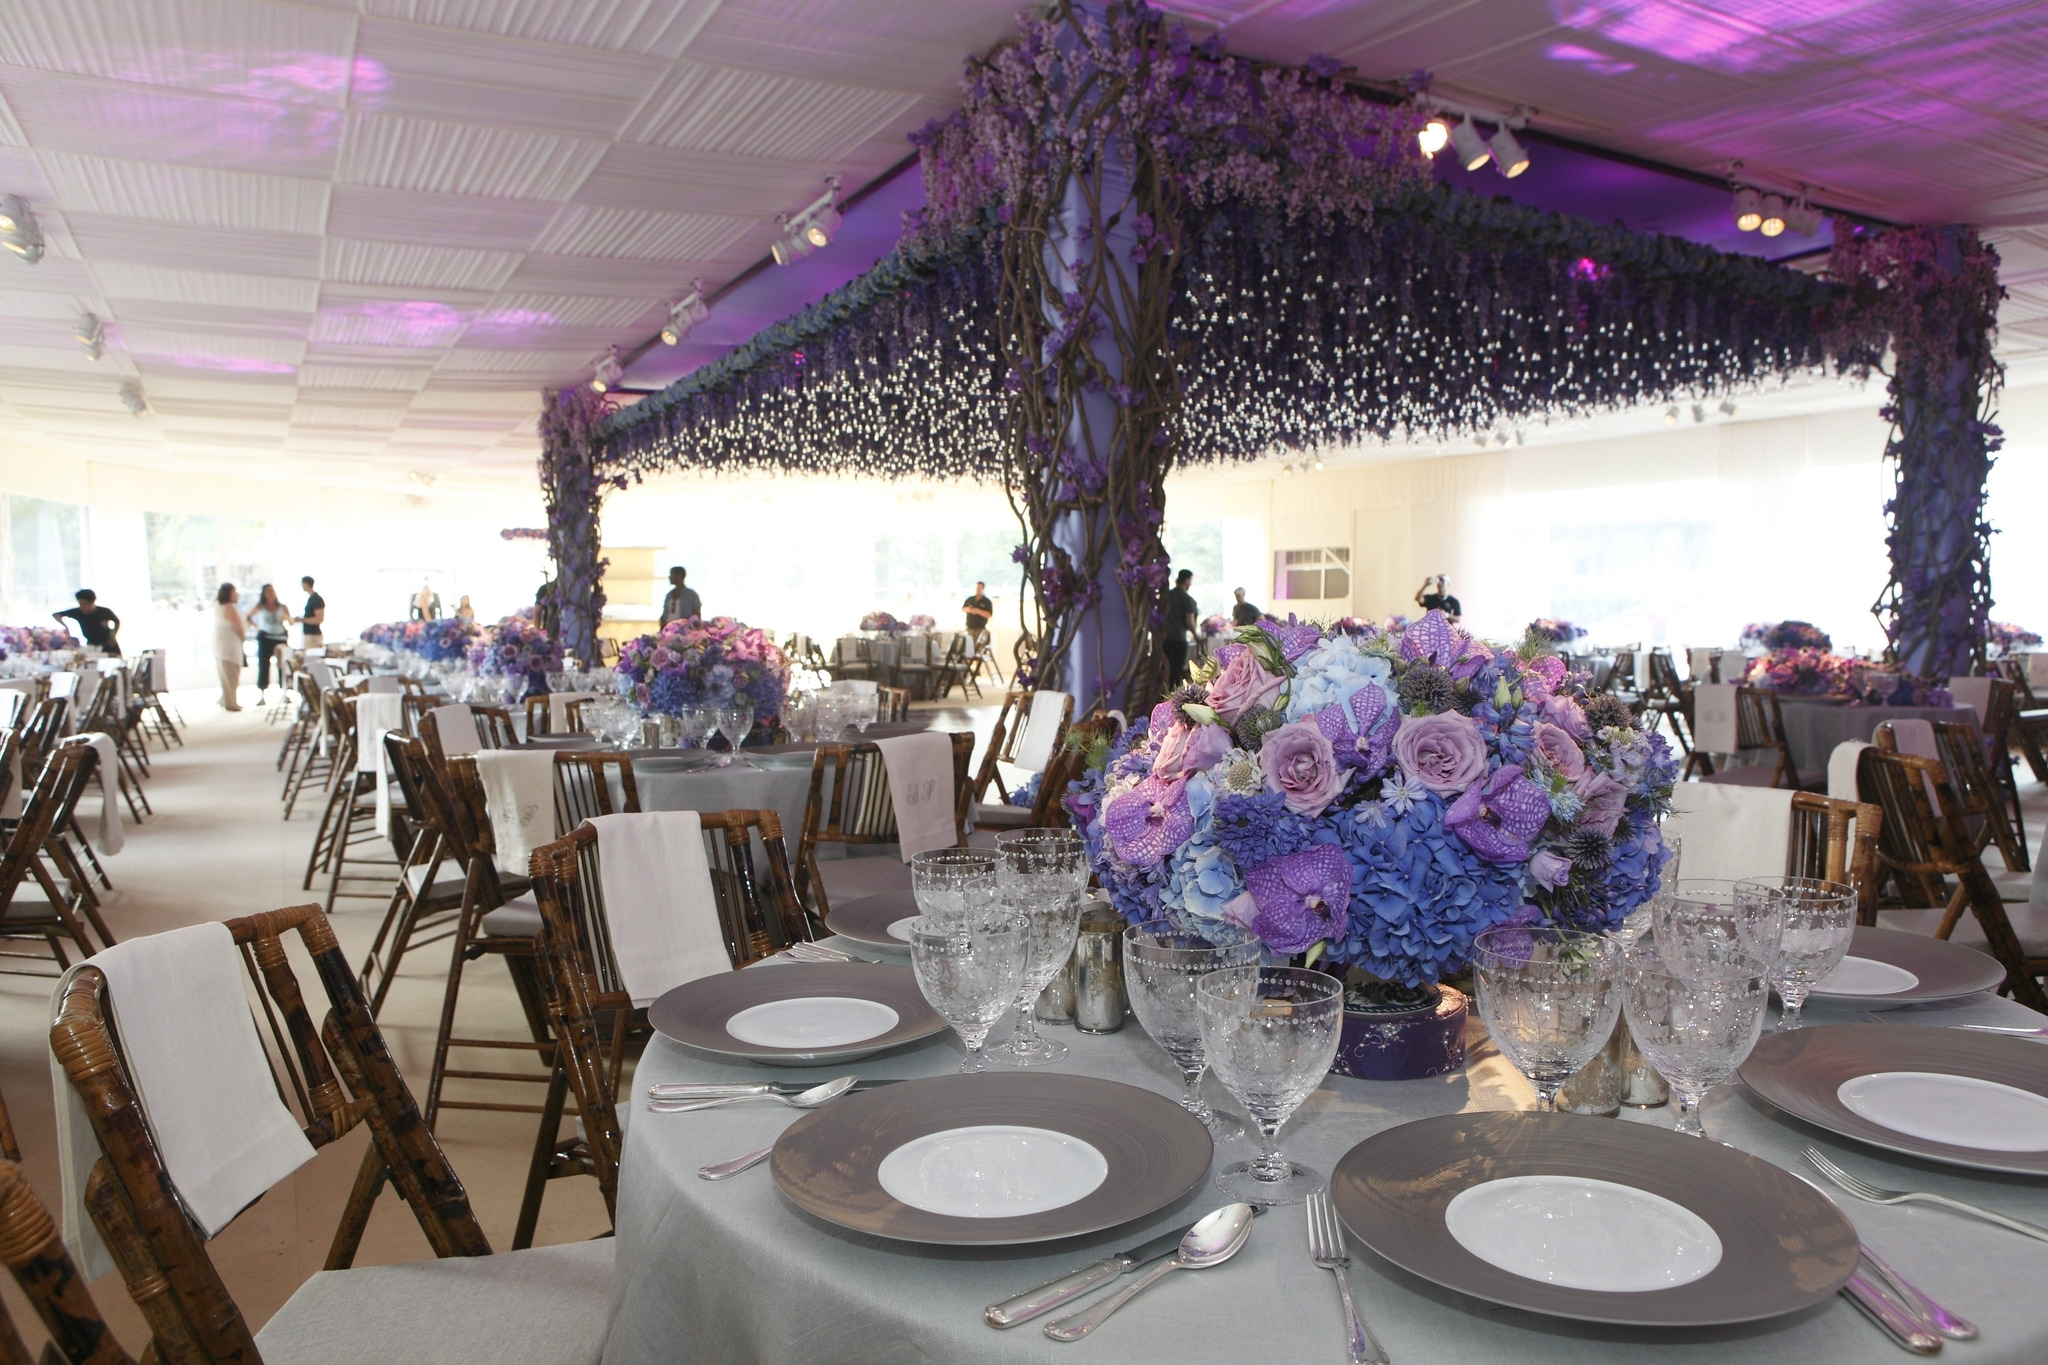 Chicago Wedding and Event Planner - Paulette Wolf